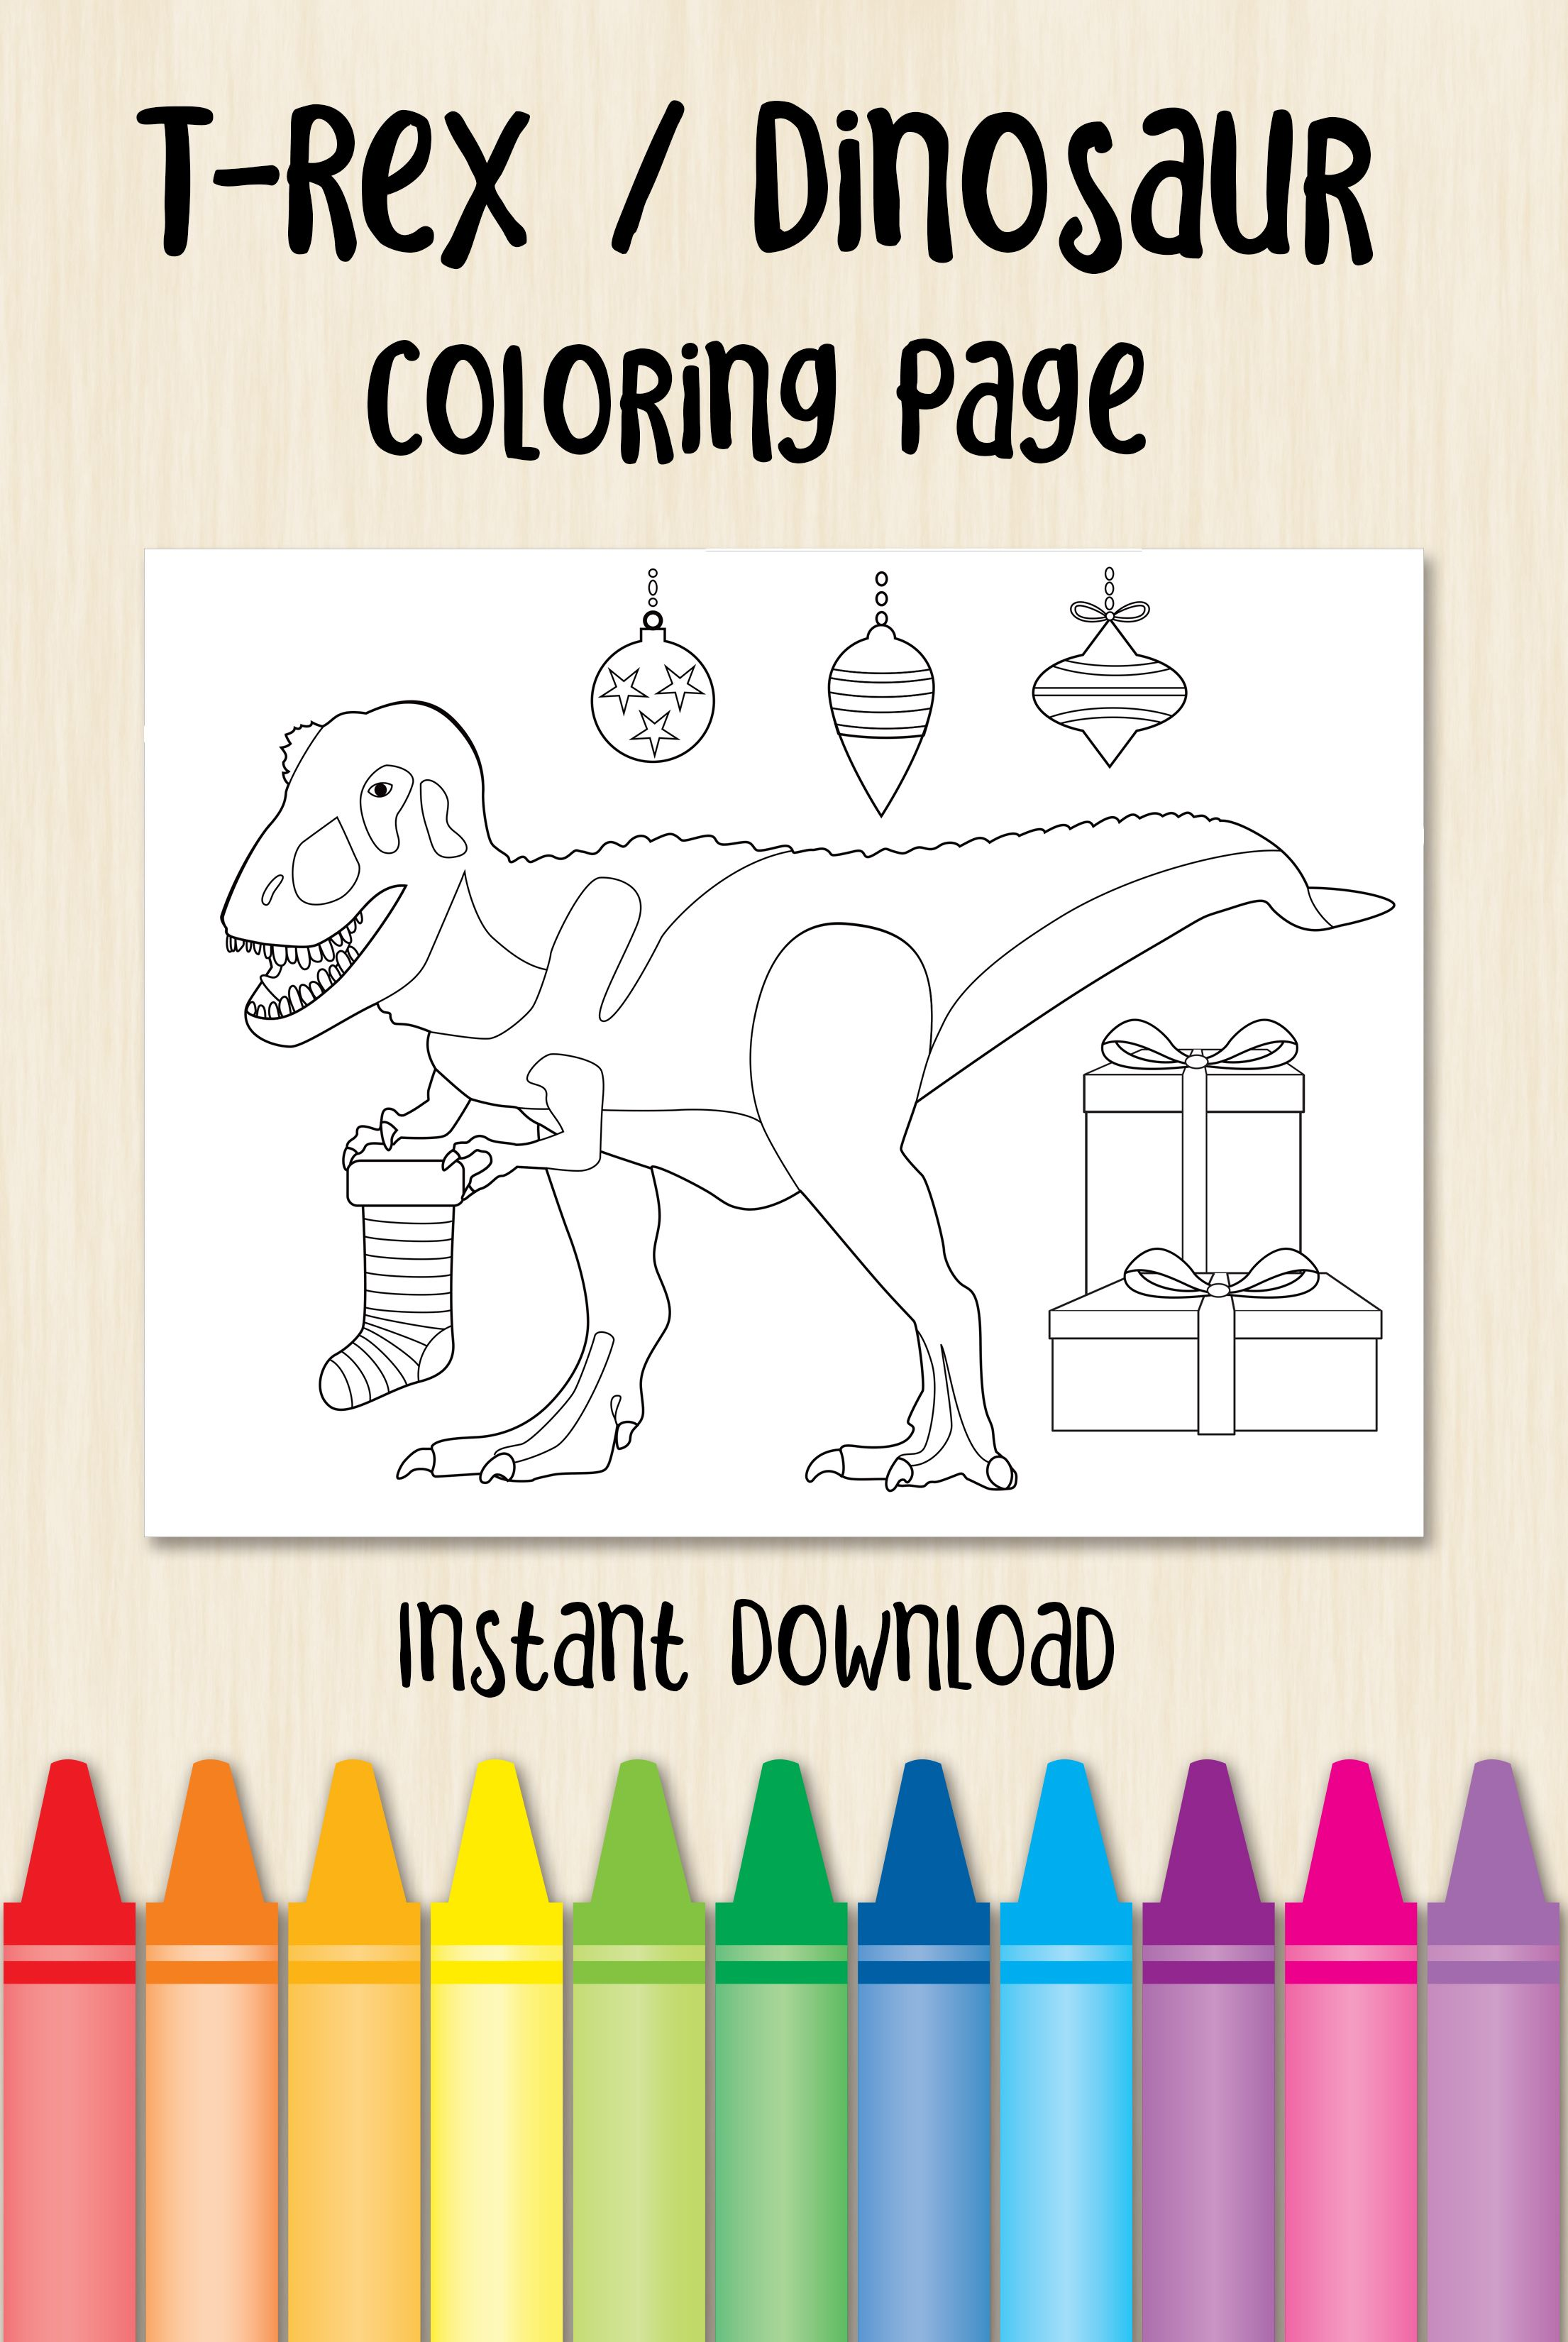 T Rex Dinosaur Christmas Coloring Page Excellent Activity For Your Toddlers And Kids Even Coloring For Kids Christmas Coloring Pages Dinosaur Coloring Pages